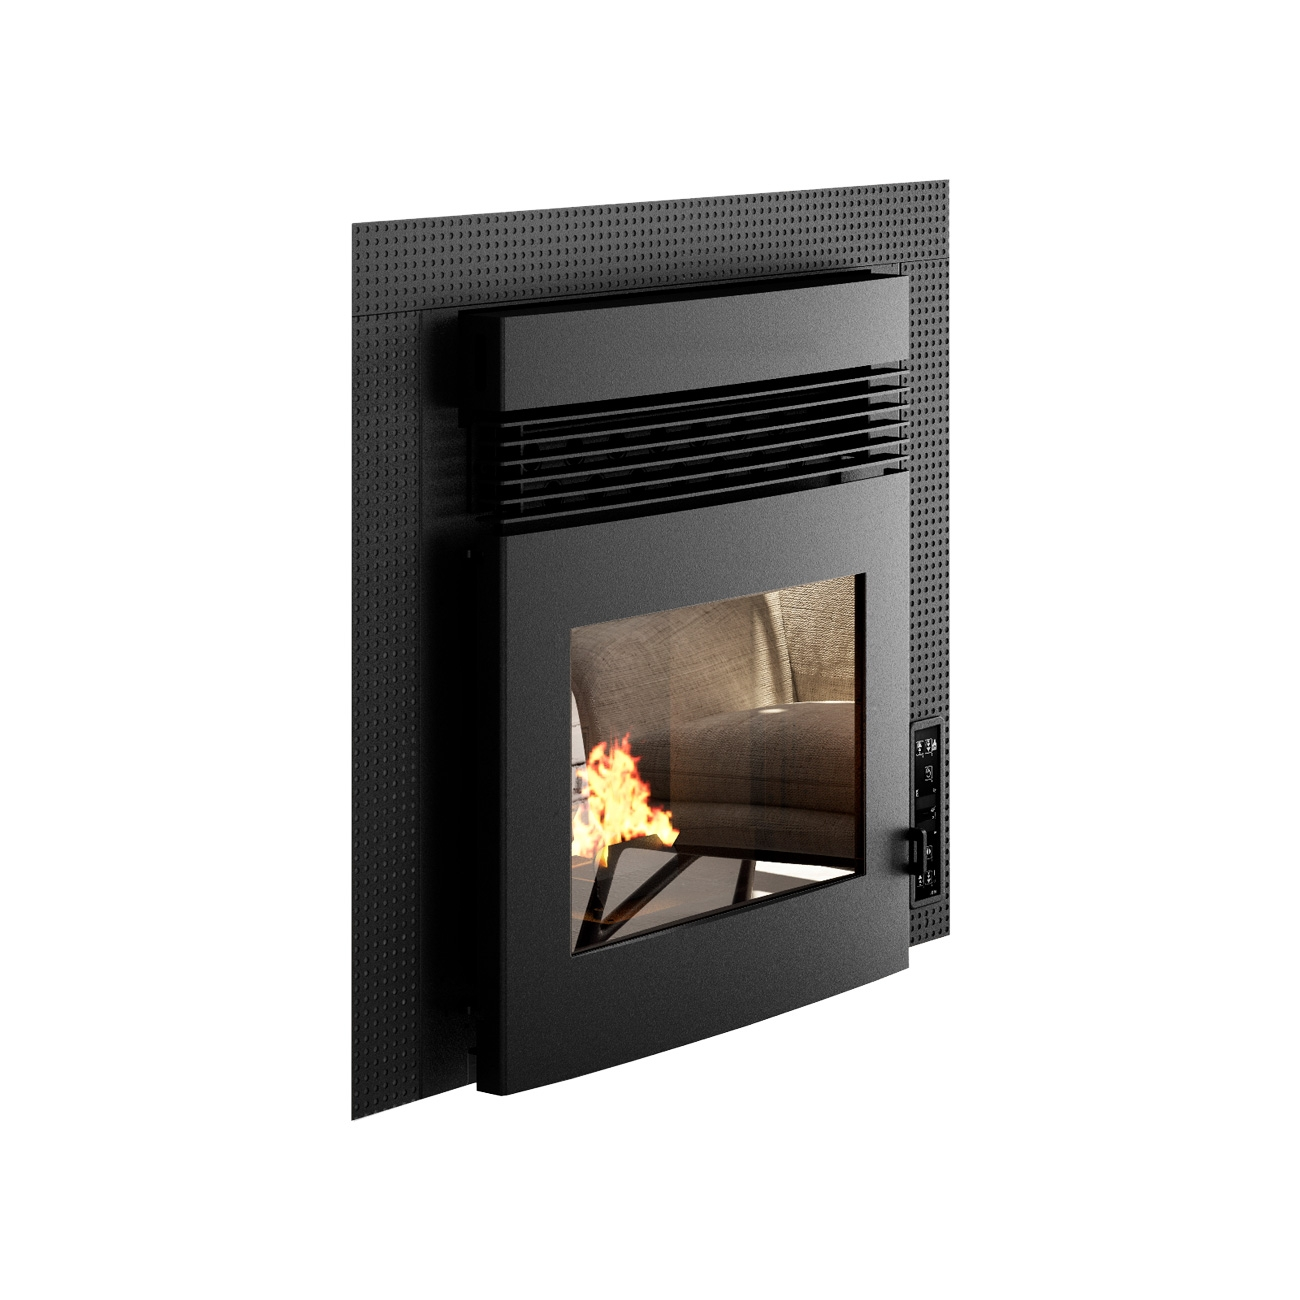 Punto Fuoco Alessio CNLZ 11 kW Ducted pellet fireplace insert